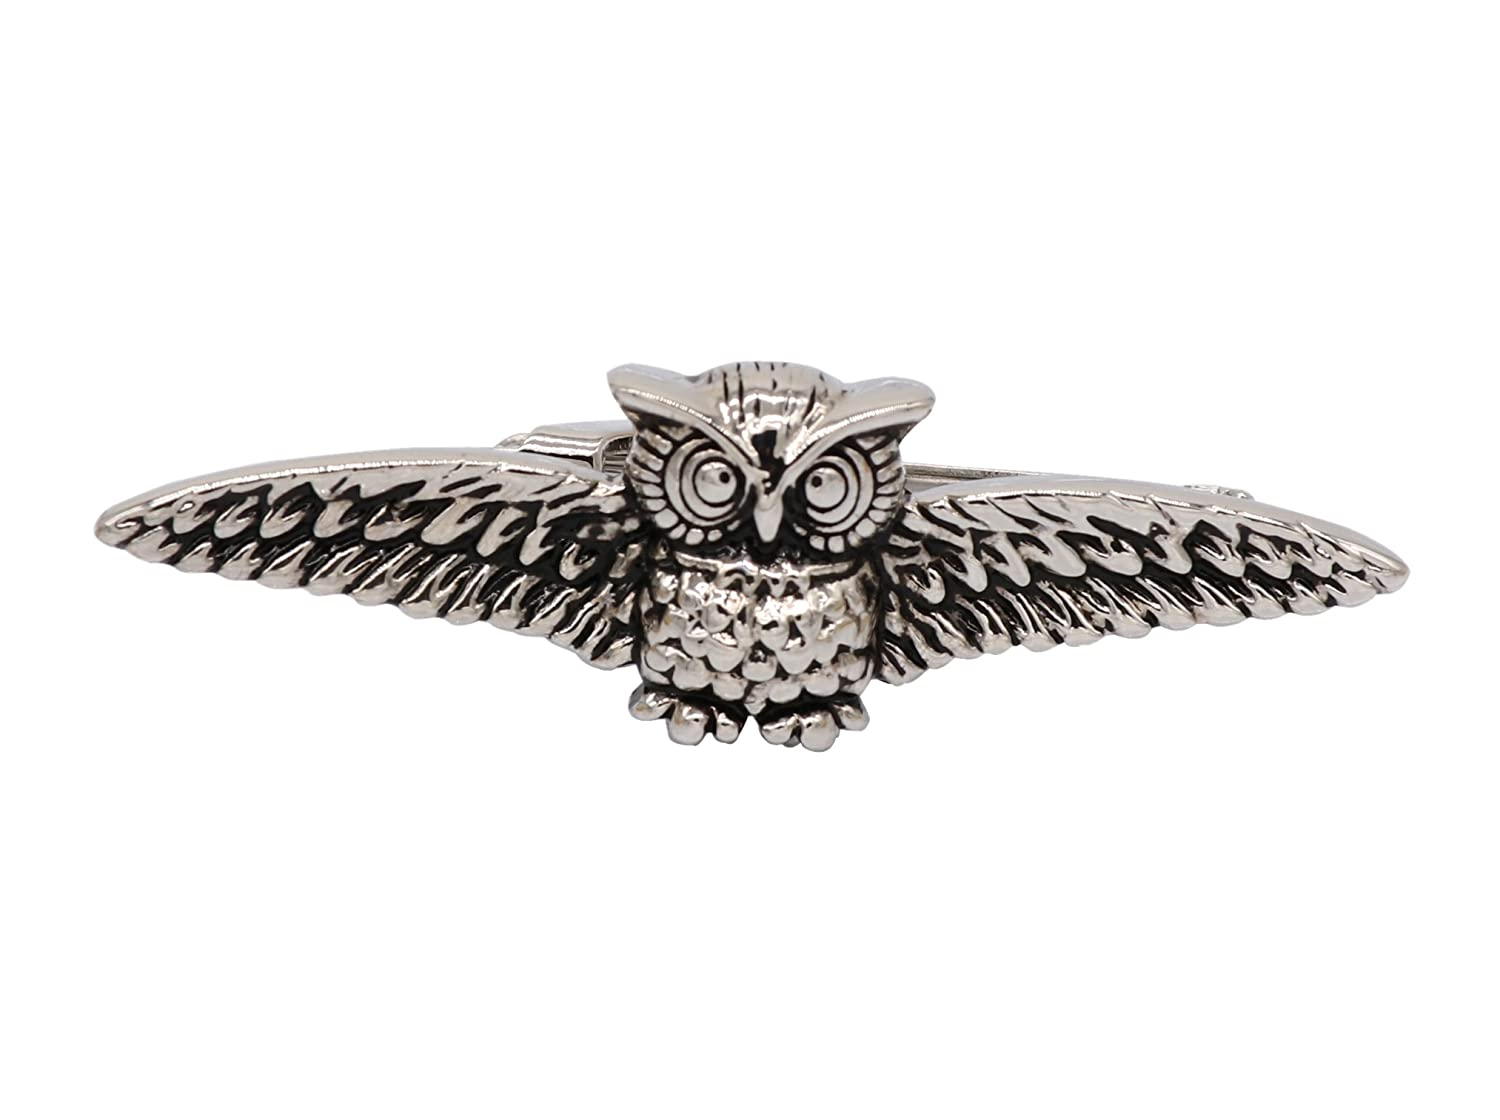 Happy cool owl Tie clips creative engraved Tie clips brass plated white steel Tie clips Metallic animal Tie clips Dapyst BLK.XK.143.YQQ